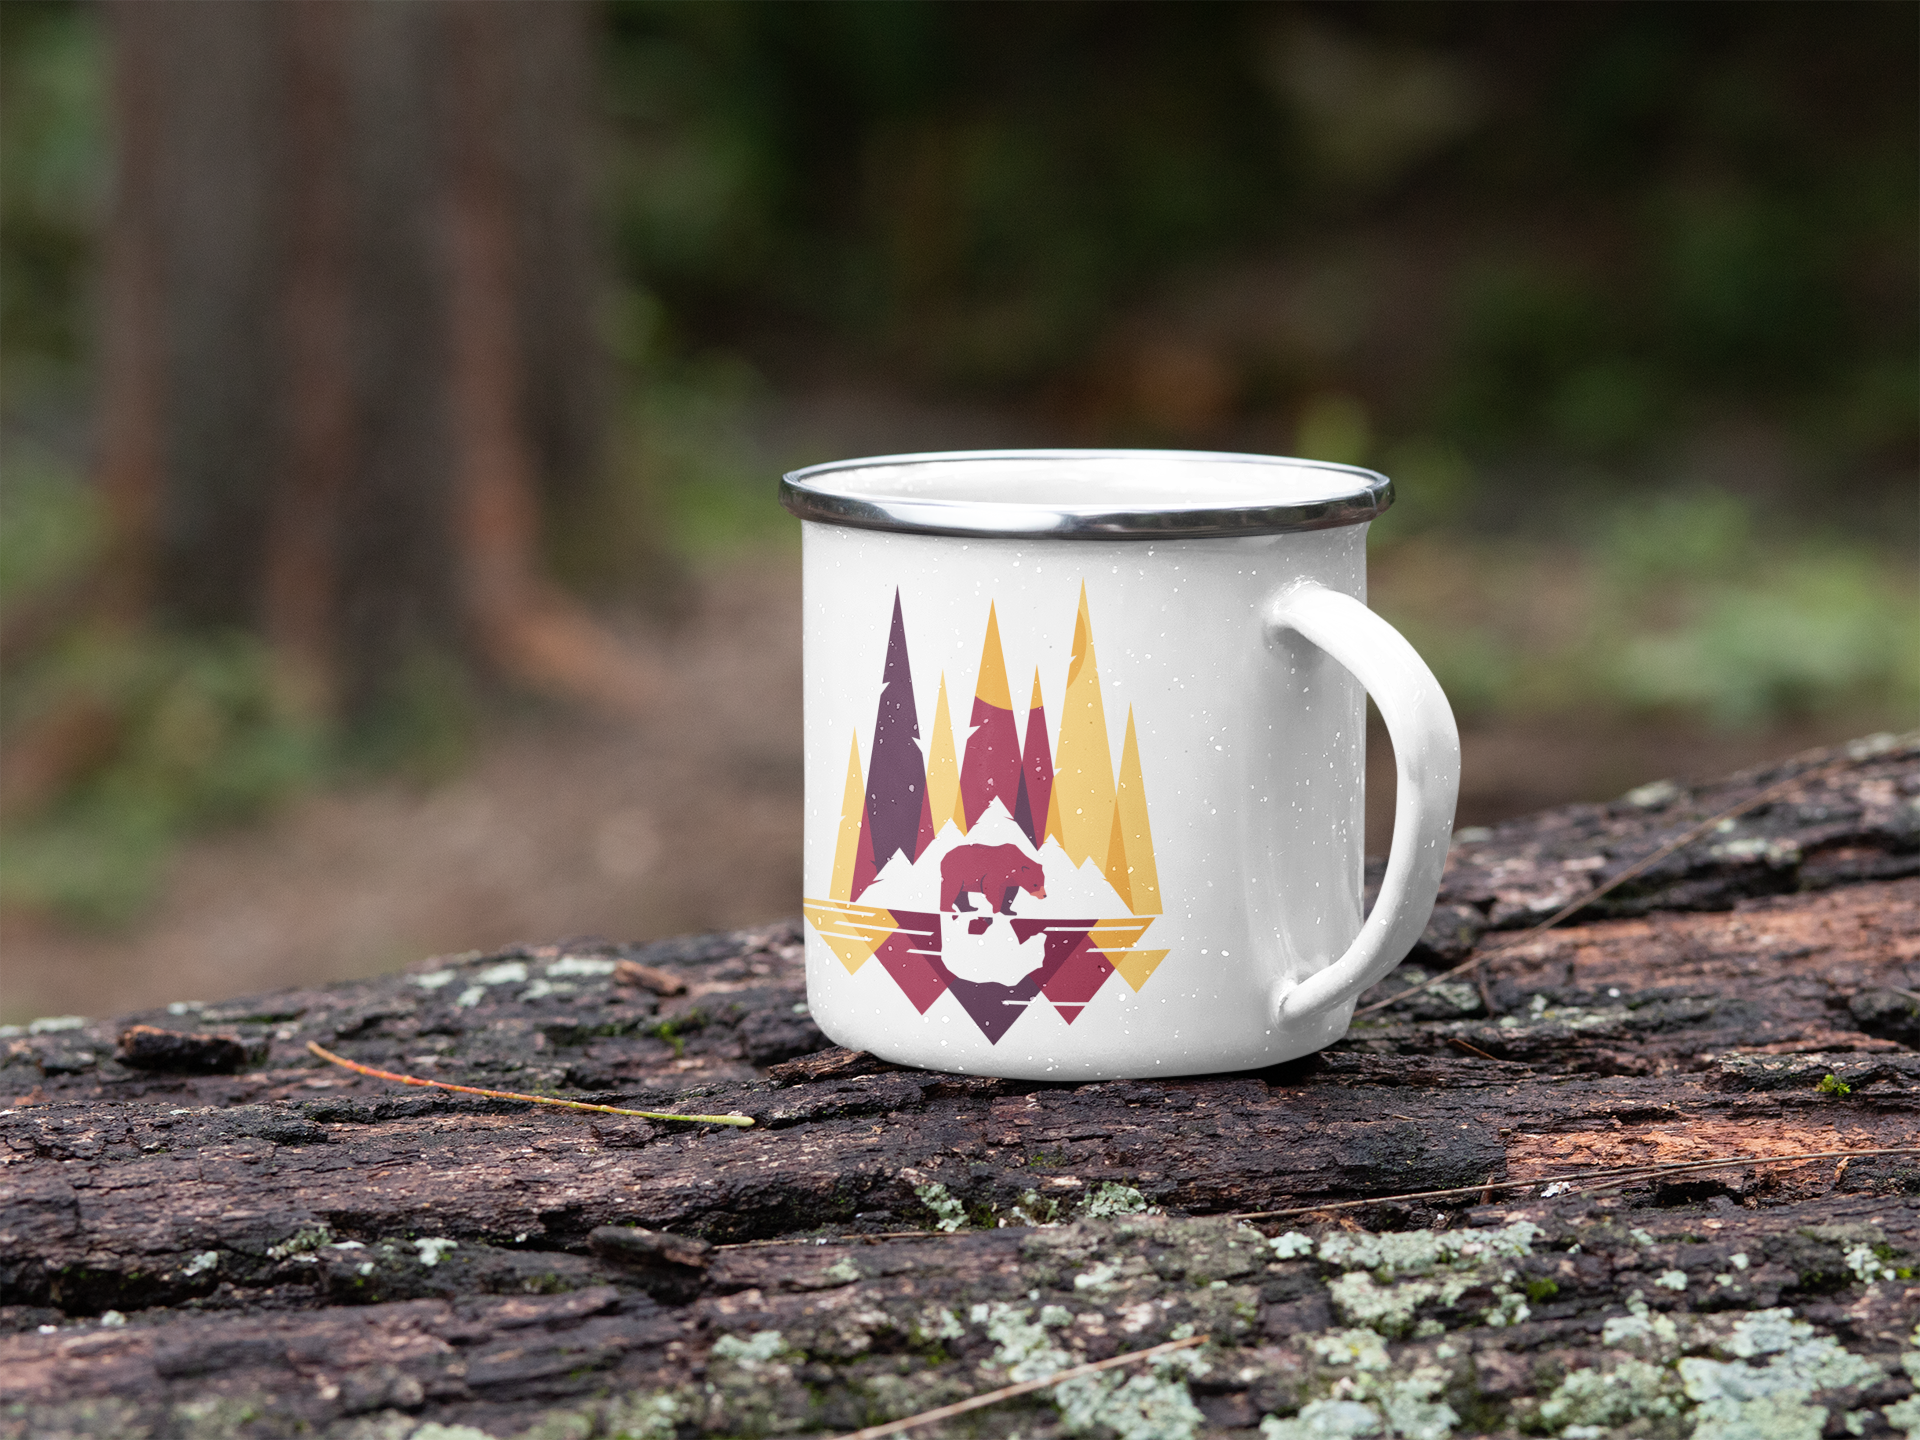 mockup-of-a-silver-rim-enamel-mug-placed-on-a-log-in-the-woods-30819